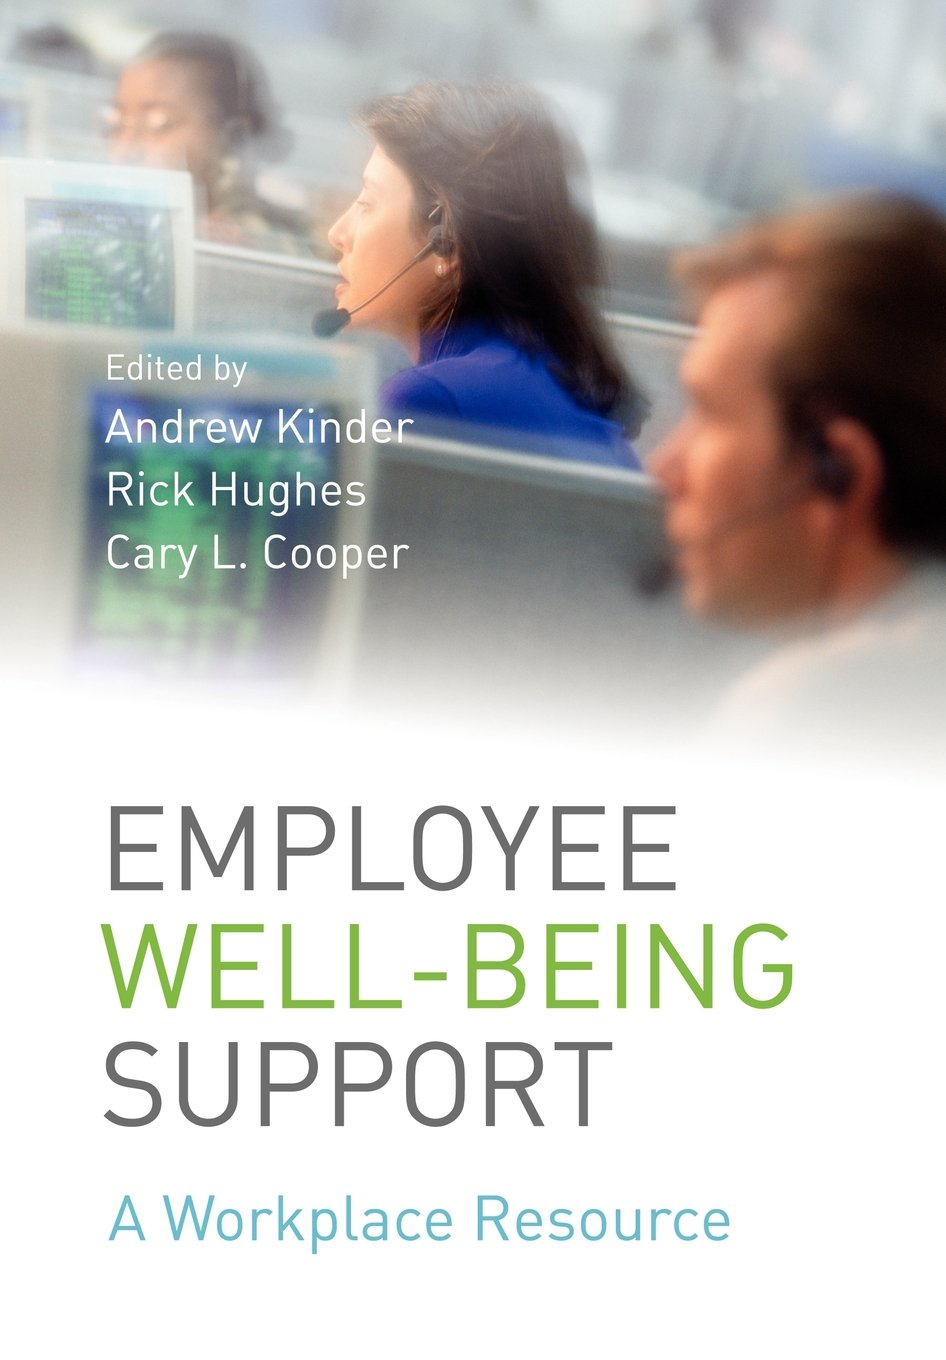 employee well being support a workplace resource amazon co uk employee well being support a workplace resource amazon co uk andrew kinder 9780470059005 books